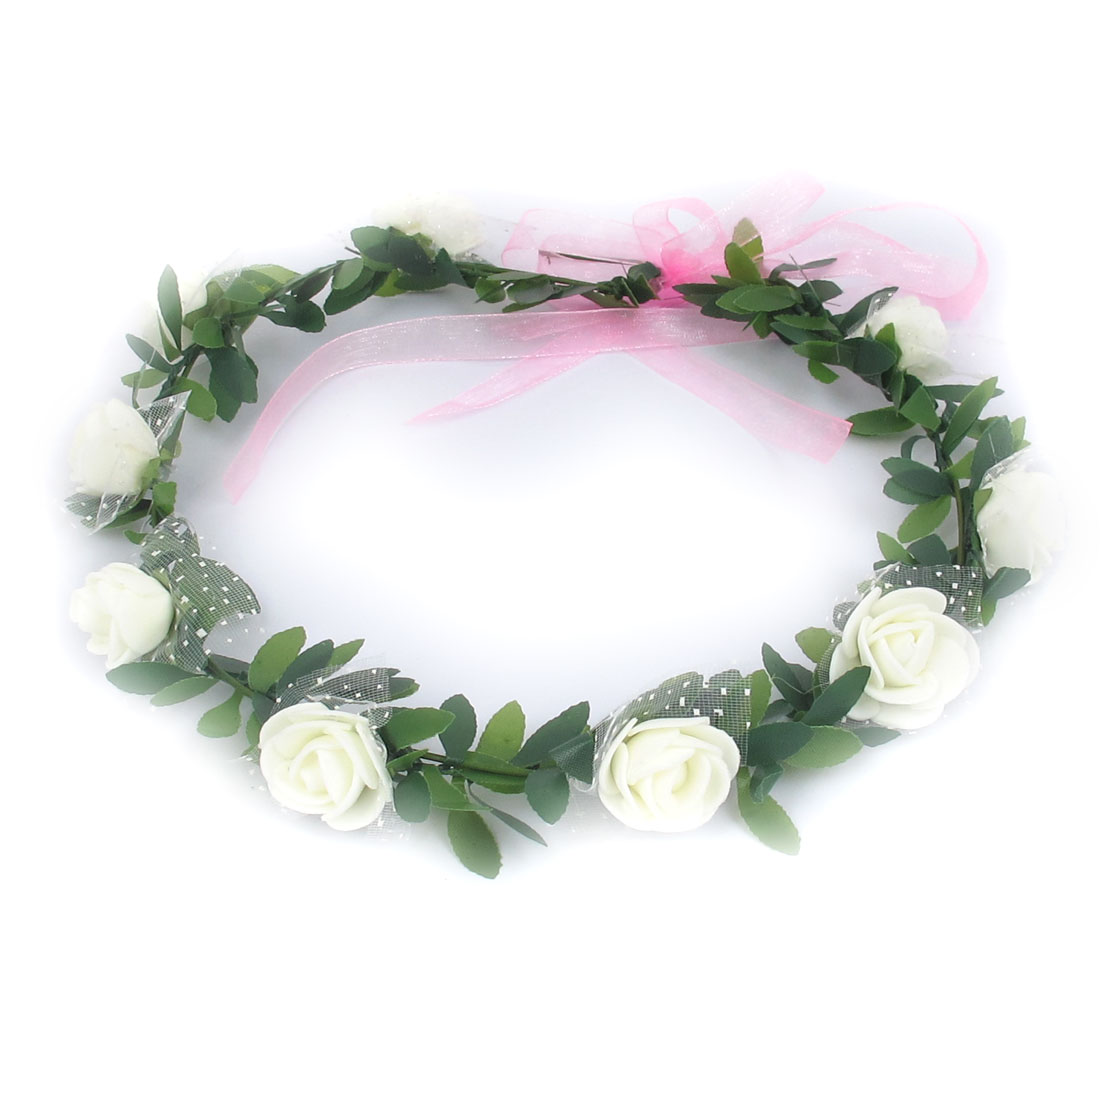 Lady Wedding Party Flower Decor Adjustable Headwear Headdress Hair Crown Wreath White